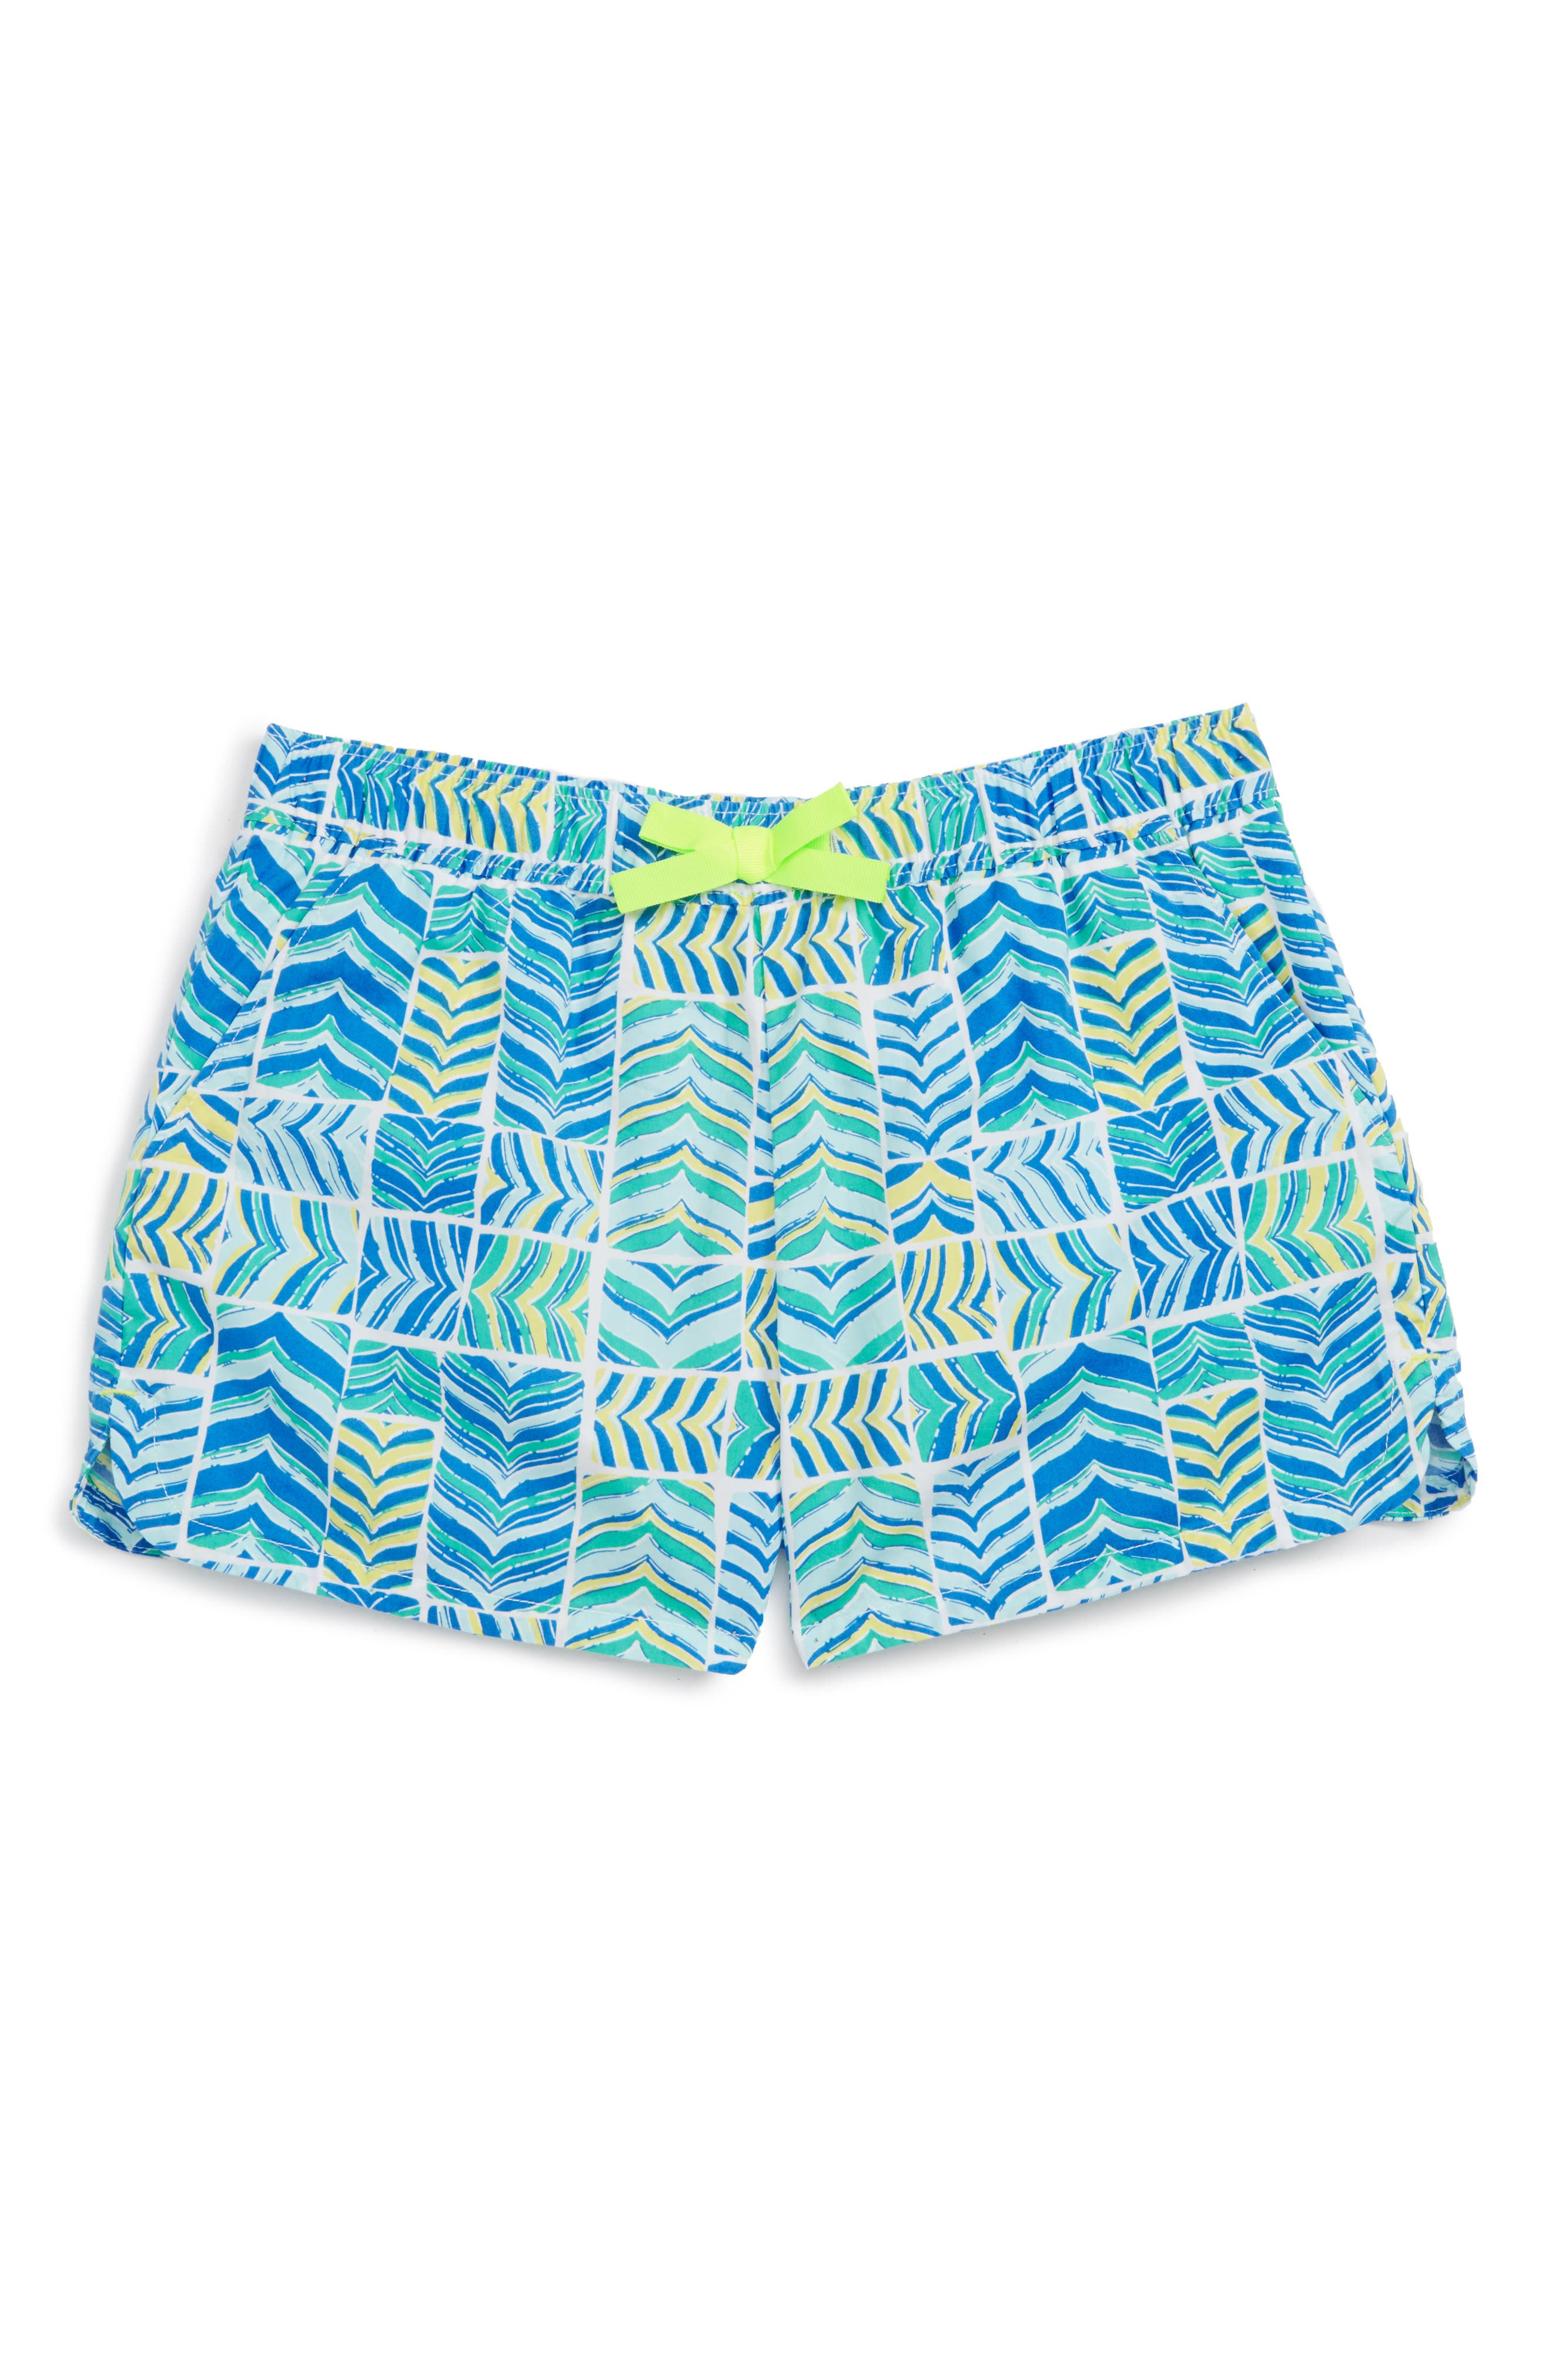 Alternate Image 1 Selected - vineyard vines Whaletail Patchwork Shorts (Toddler Girls & Big Girls)